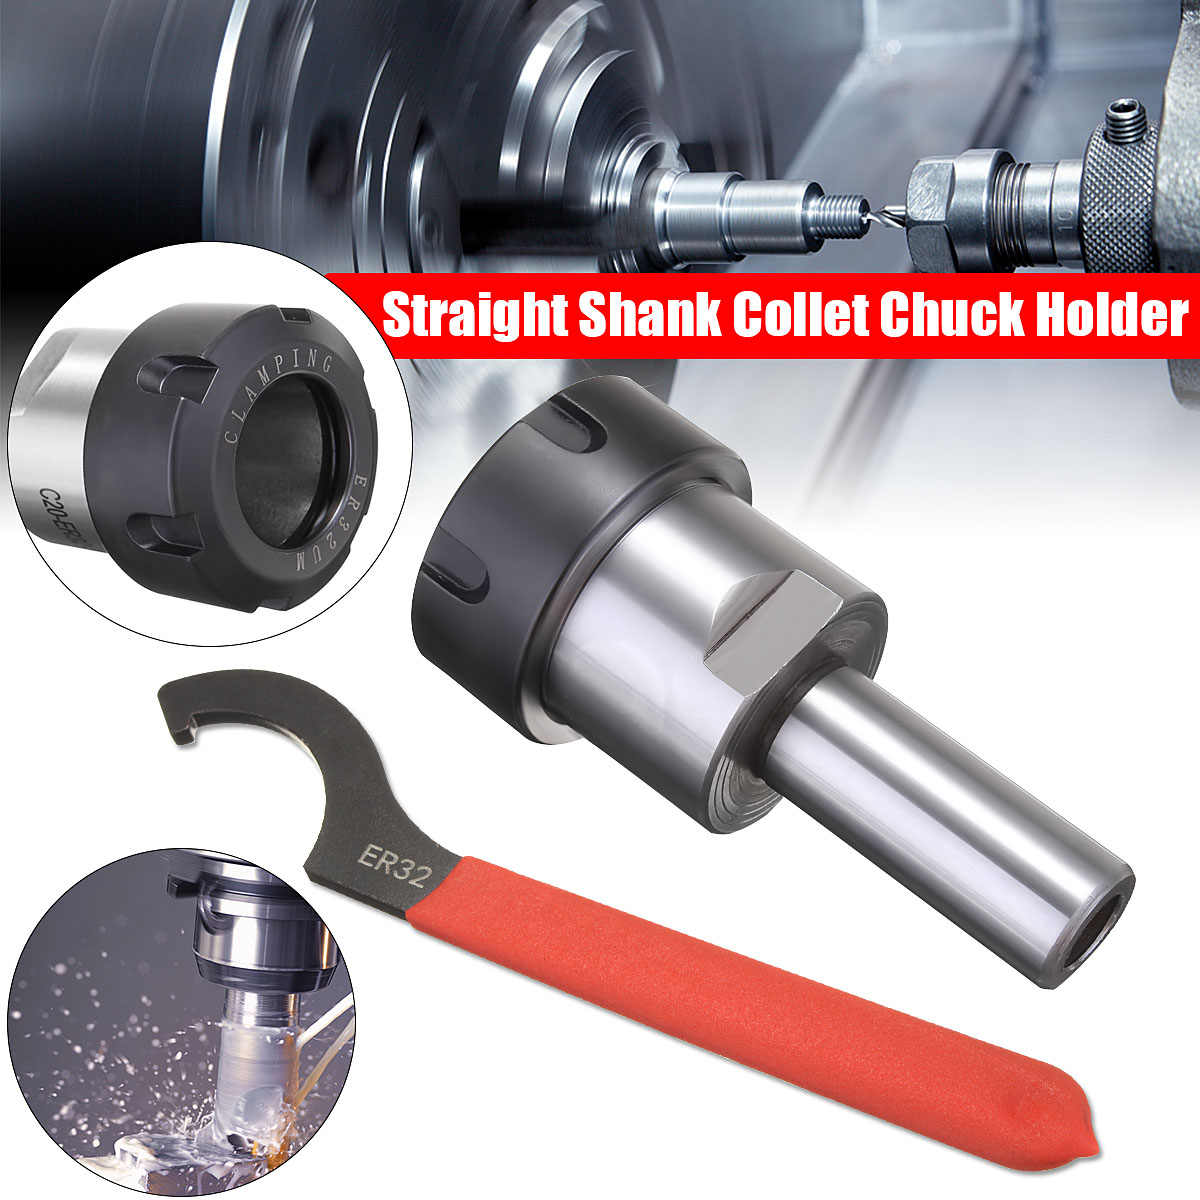 WOLIKE C20-ER32-50L CNC Arbor Straight Shank Collet Chuck Holder 20MM Diameter Tools